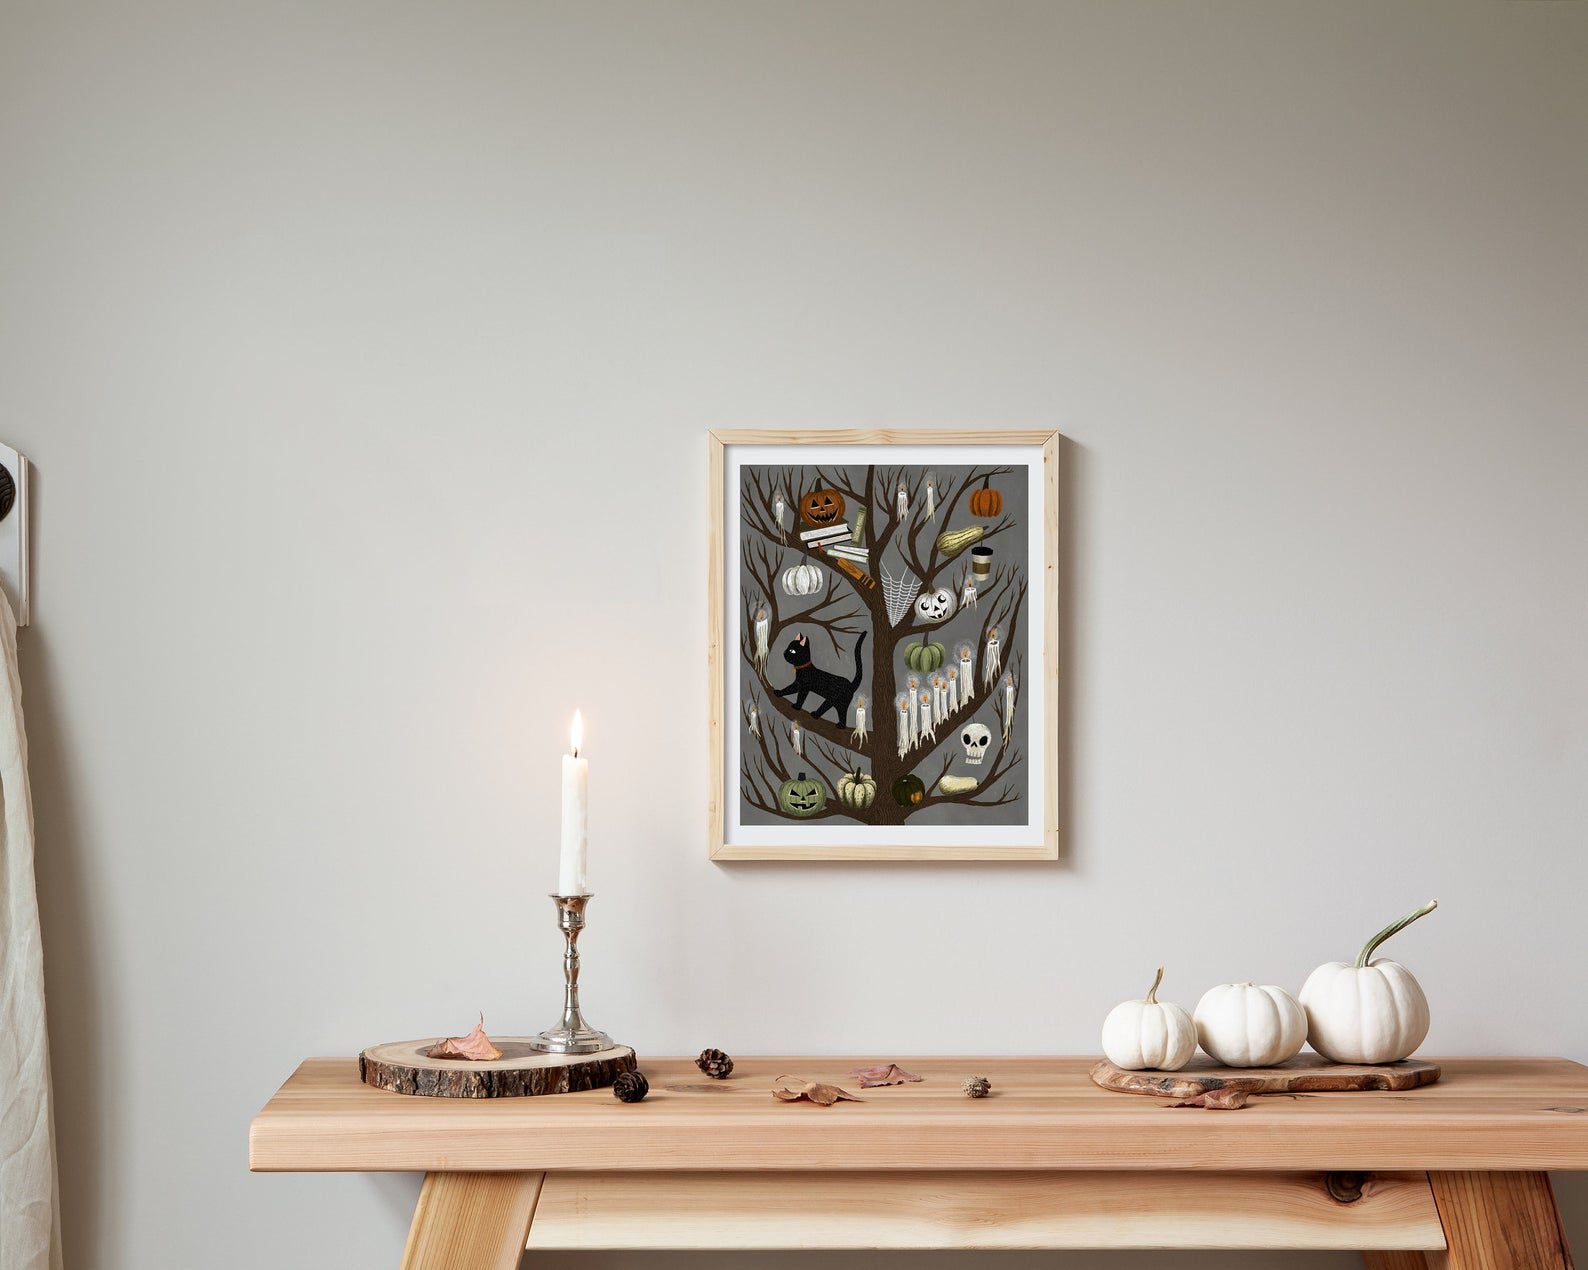 Image of spooky tree art, with branches featuring books, skeletons, ghosts, cats, and pumpkins.